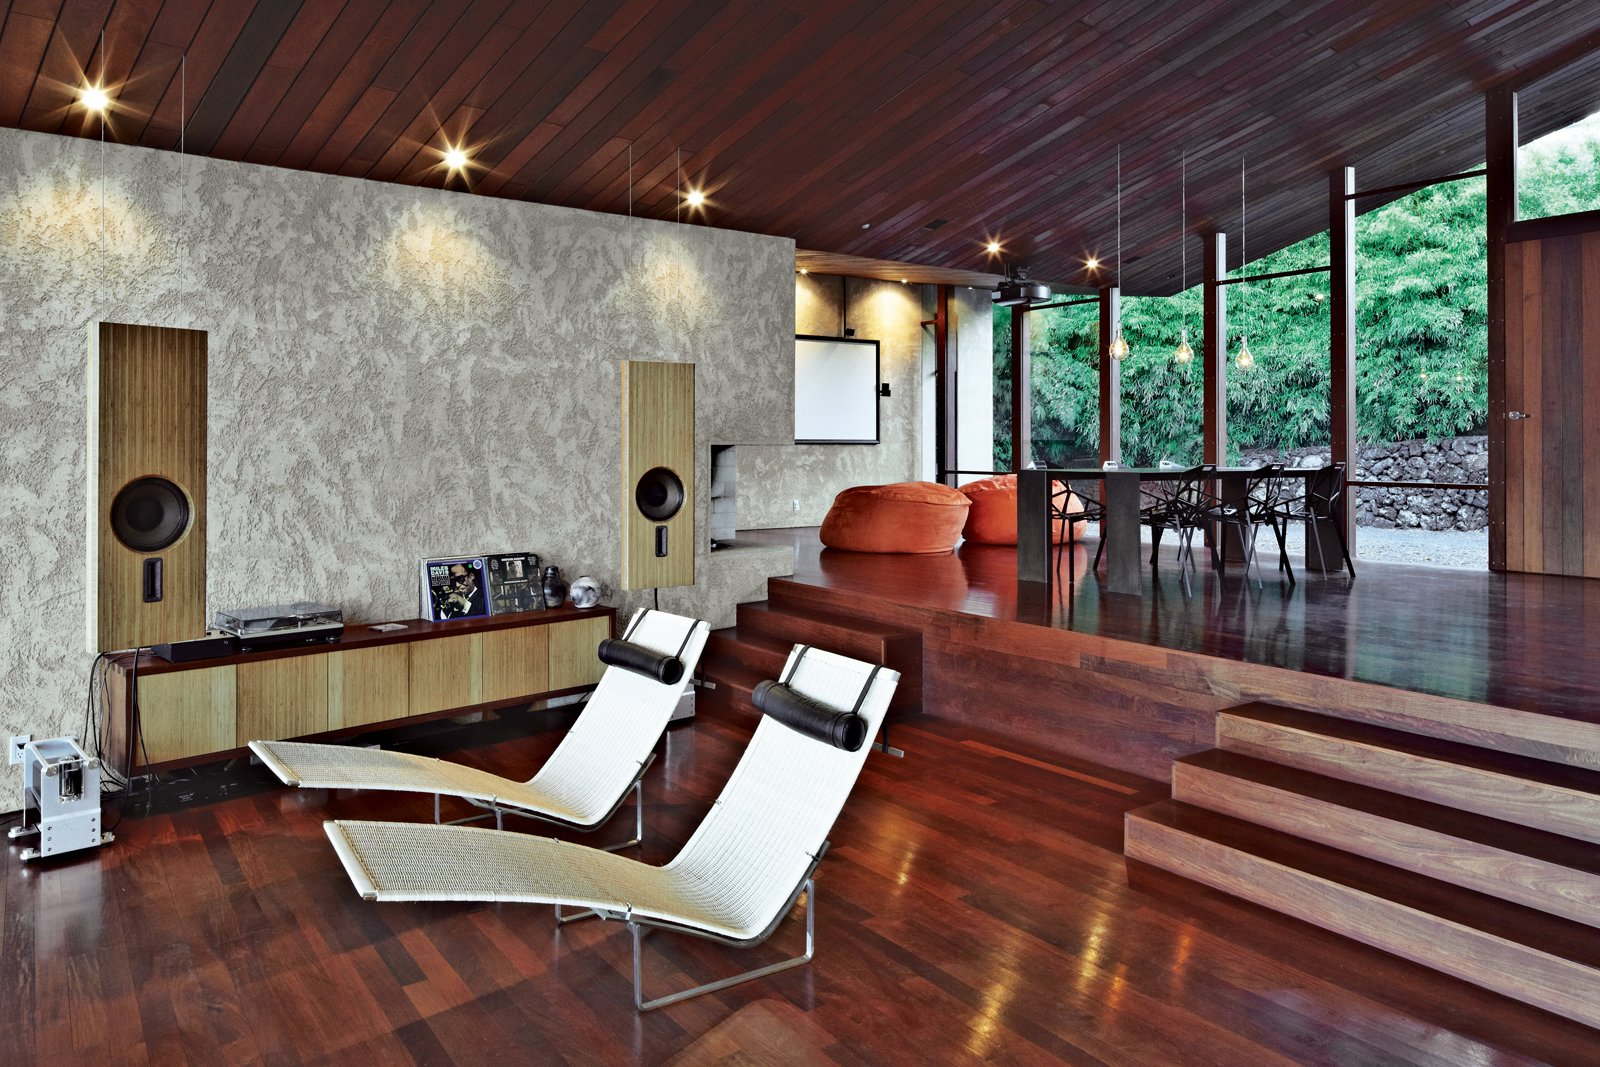 Dekleva Gregorič Arhitekti, along with resident Robert Stroj, designed most of the furnishings in the house, including the speakers, wall cabinet, and dining table. The beanbag pouffes are by Slacker Sack and the Chair-One dining chairs are by Konstantin Grcic for Magis. The stucco used on the walls was custom made from a mixture of white concrete, coral sand, dune sand, and lime.